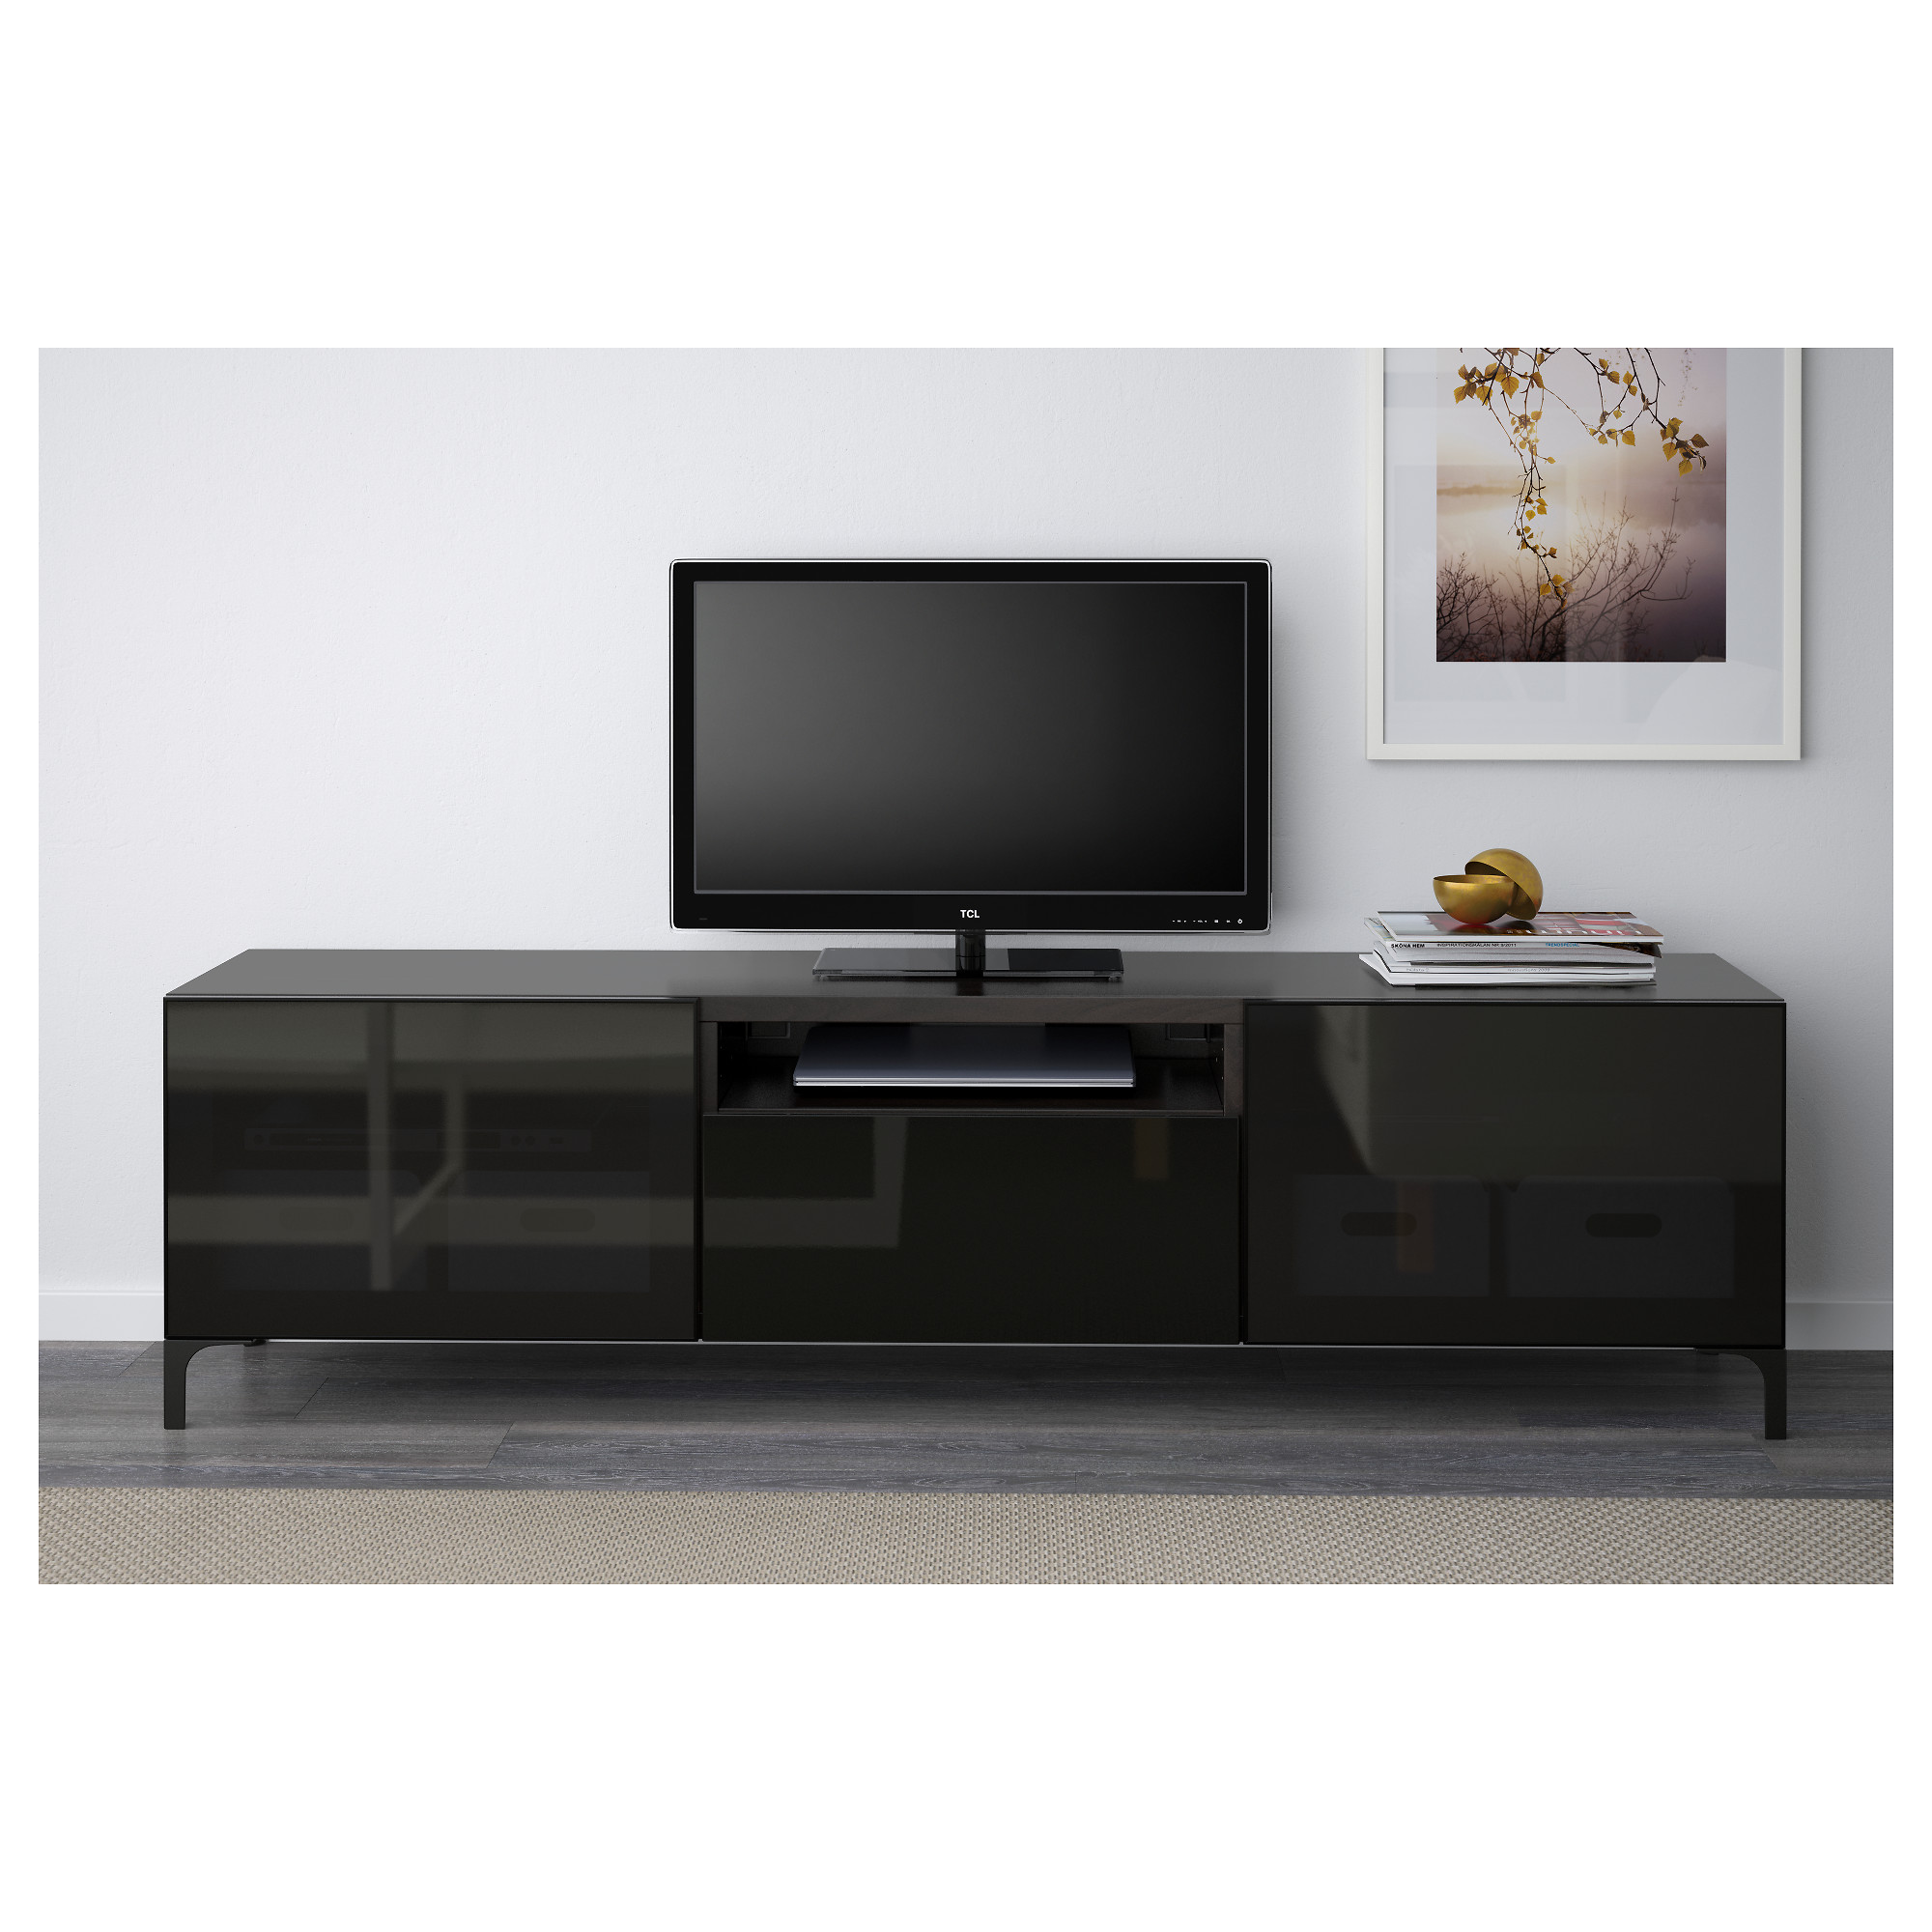 BEST  TV unit   Lappviken Sindvik white clear glass  drawer runner   push open   IKEA. BEST  TV unit   Lappviken Sindvik white clear glass  drawer runner